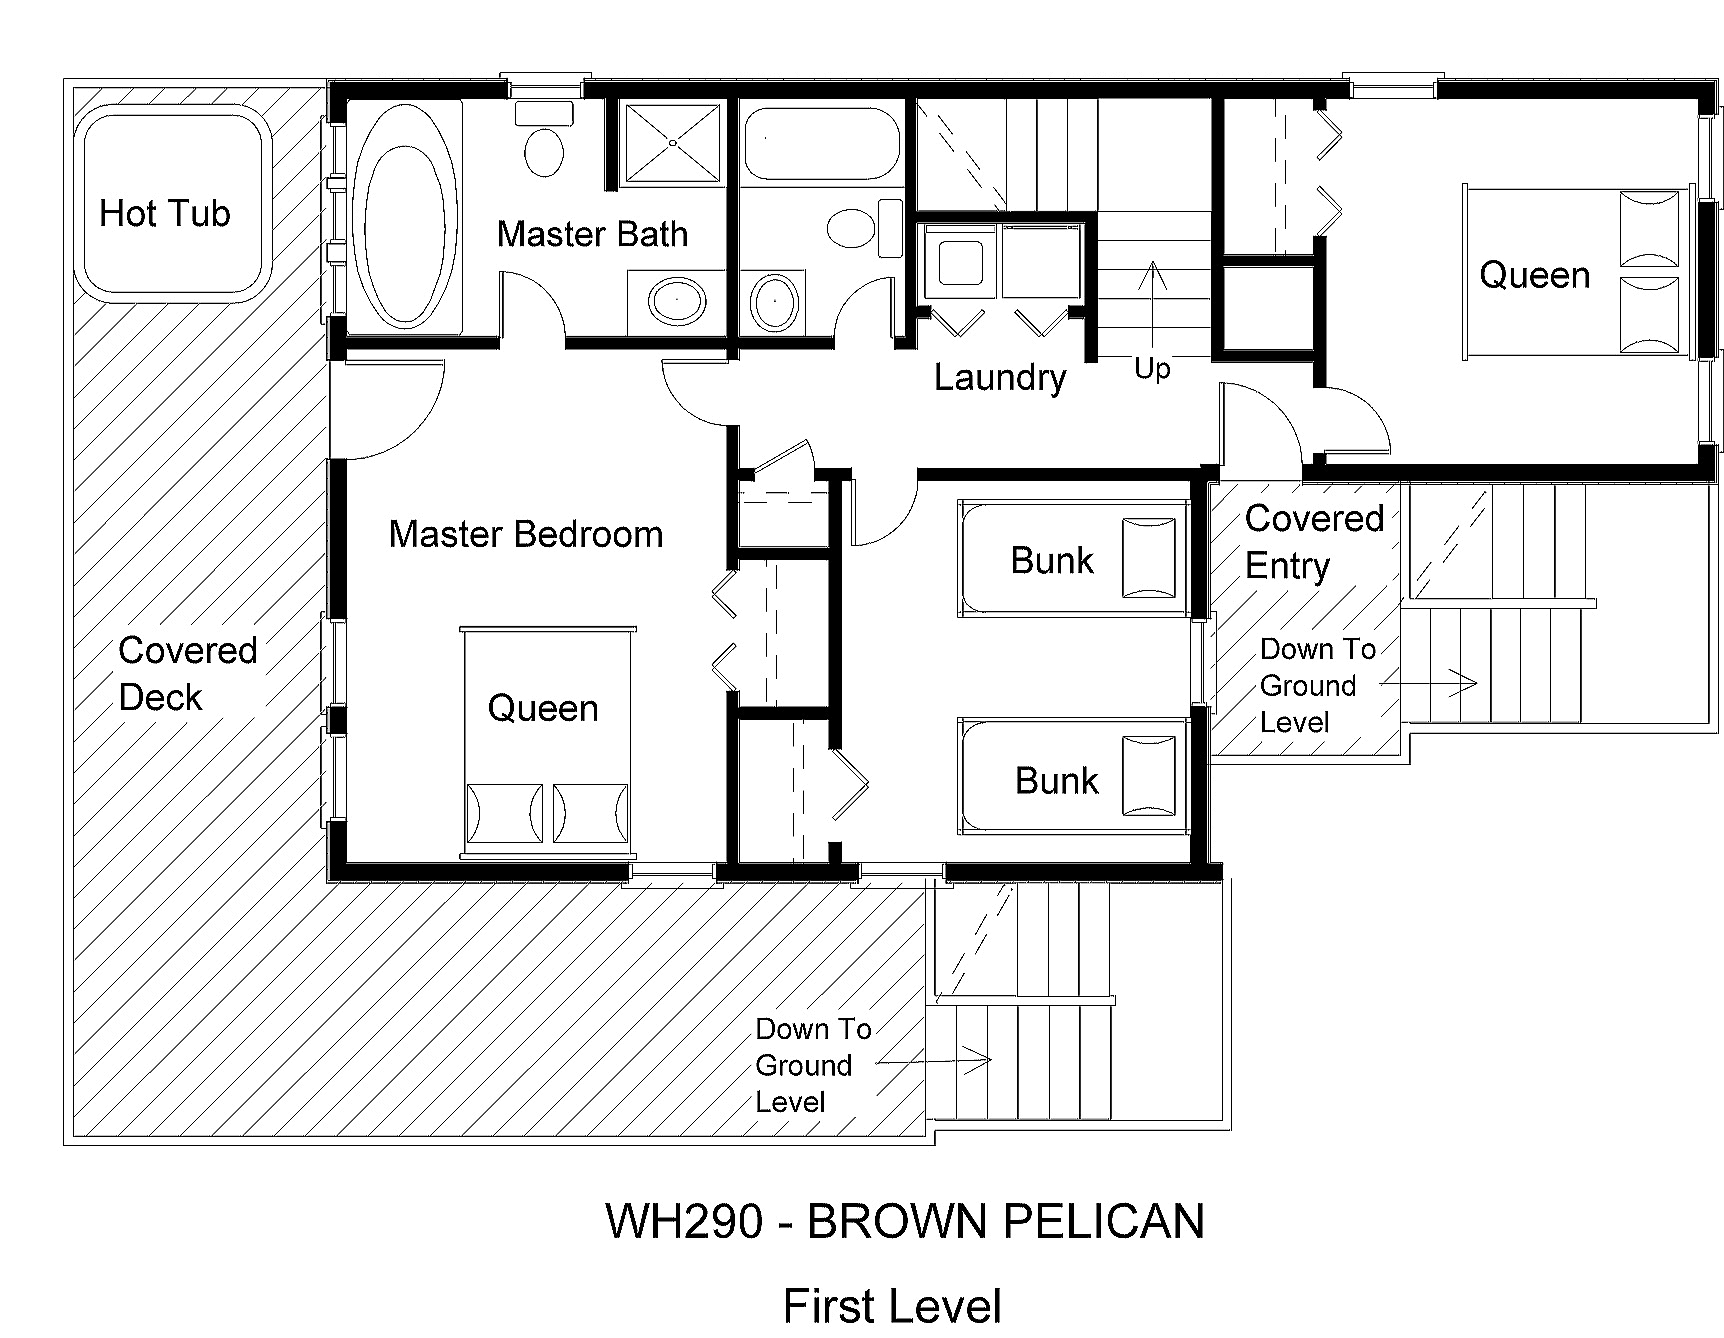 WH029 Brown Pelican - Floorplan Level 2